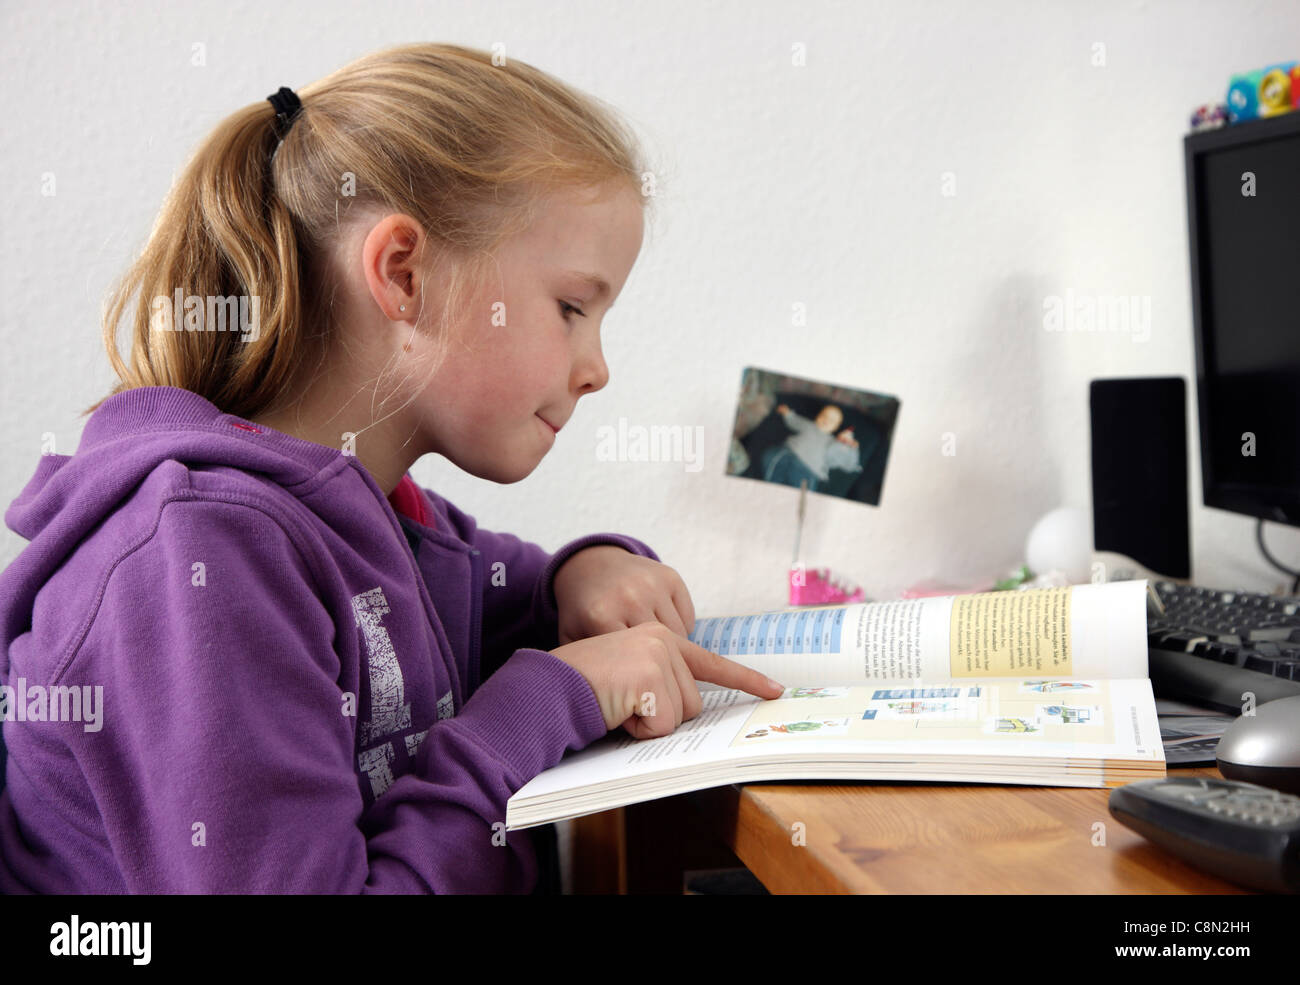 Girl, 10 years old, learning for school, at home in her room, doing homework. Stock Photo